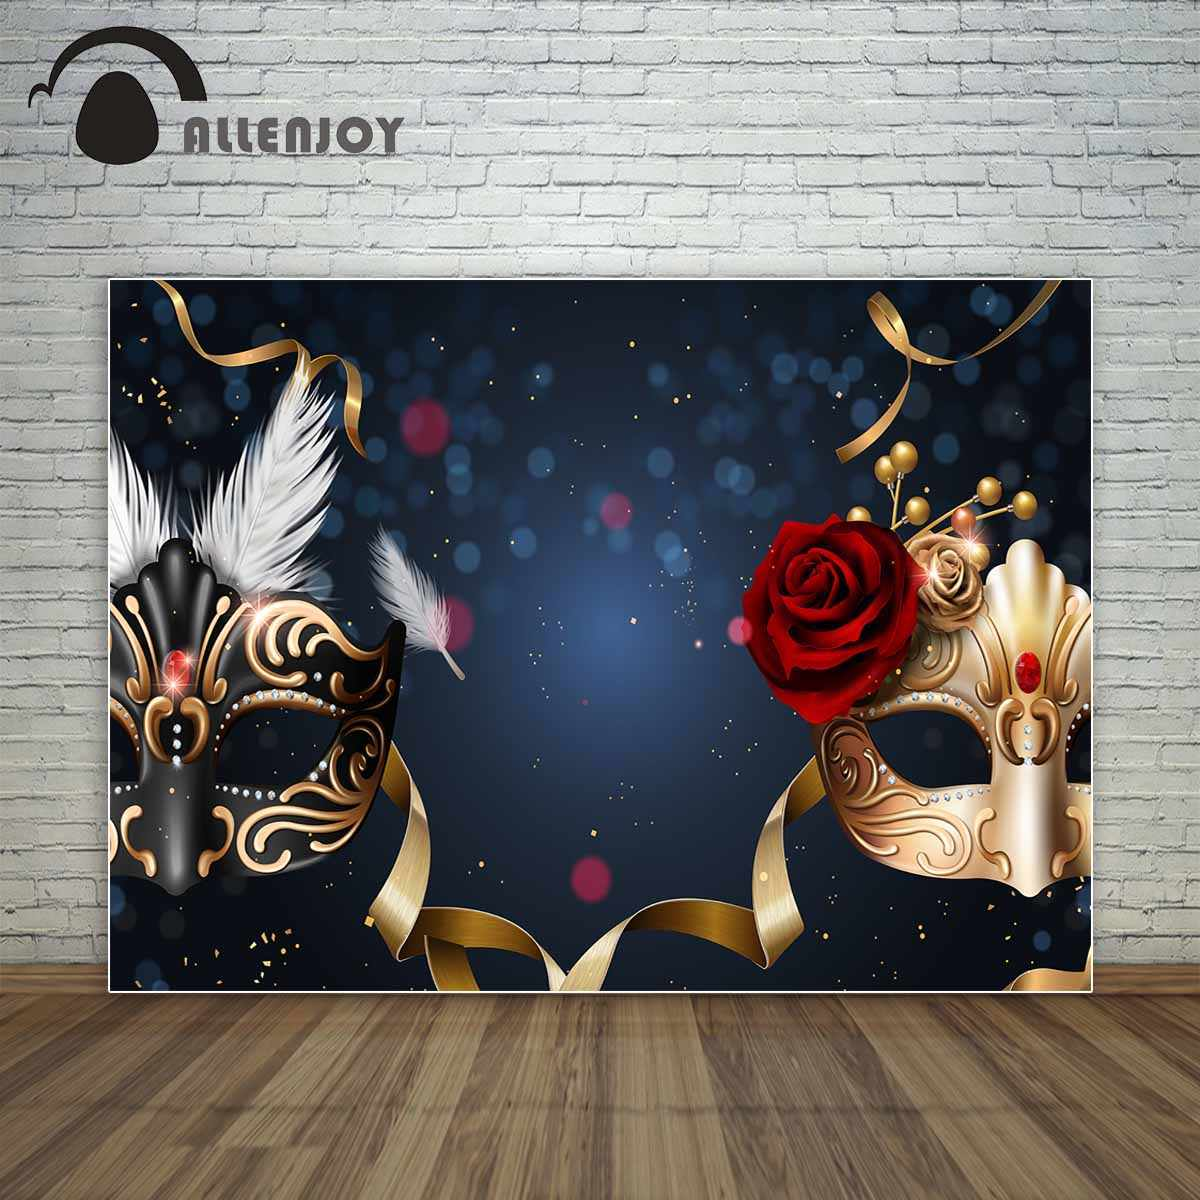 Allenjoy black and golden masks red rose dance party prom backdrop masquerade party golden ribbons background vinyl photography